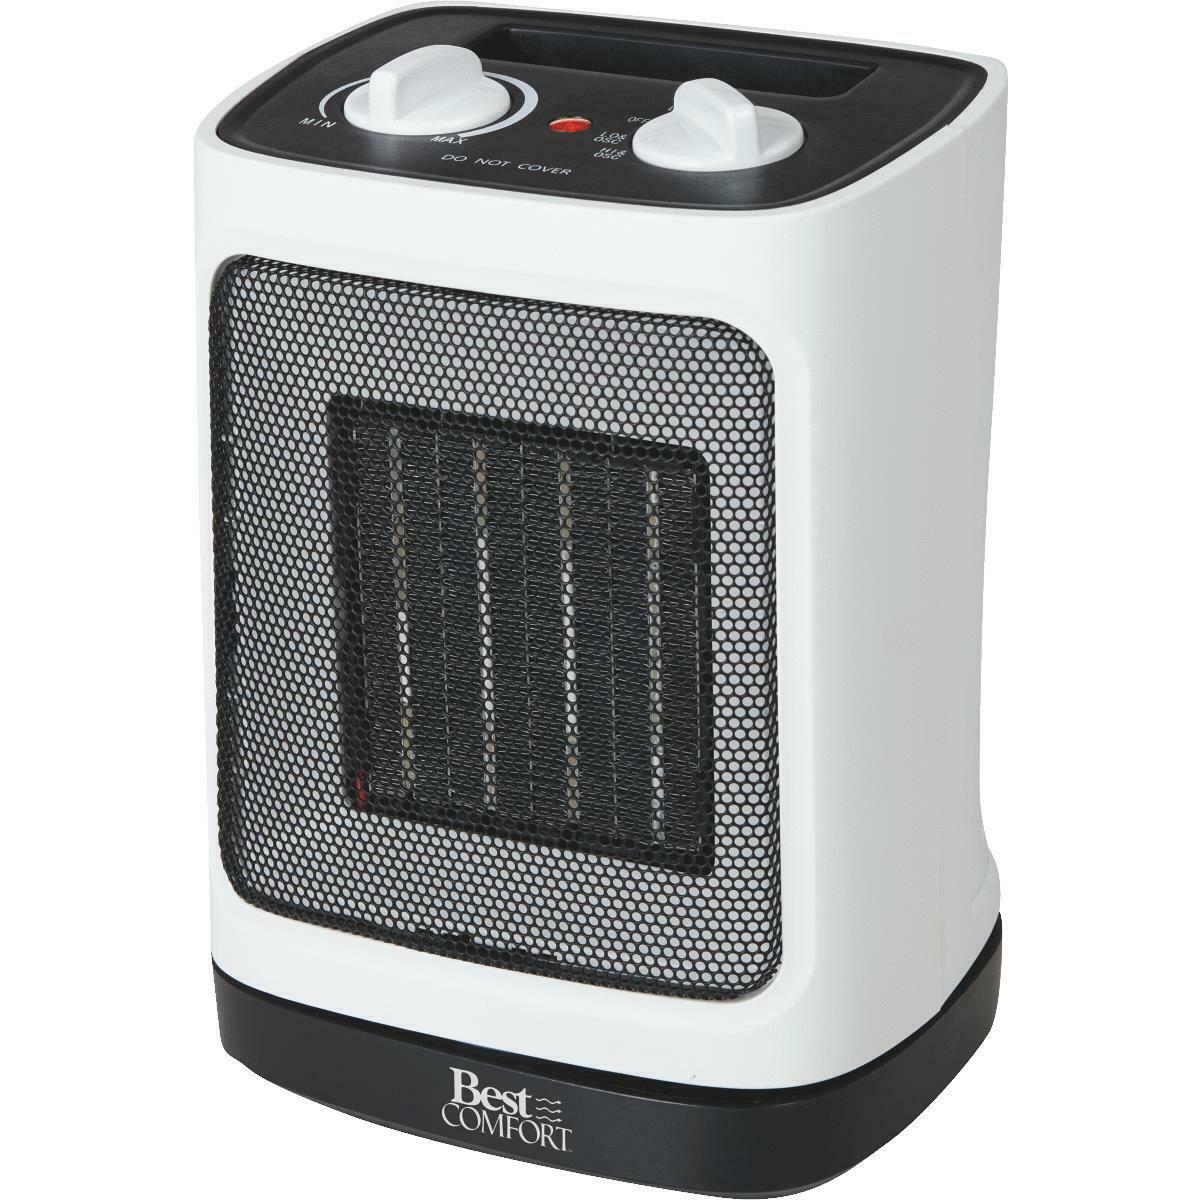 Portable Electric Space Heater Oscillating Mini Outdoor Garage Heater for Bedroom - Morealis